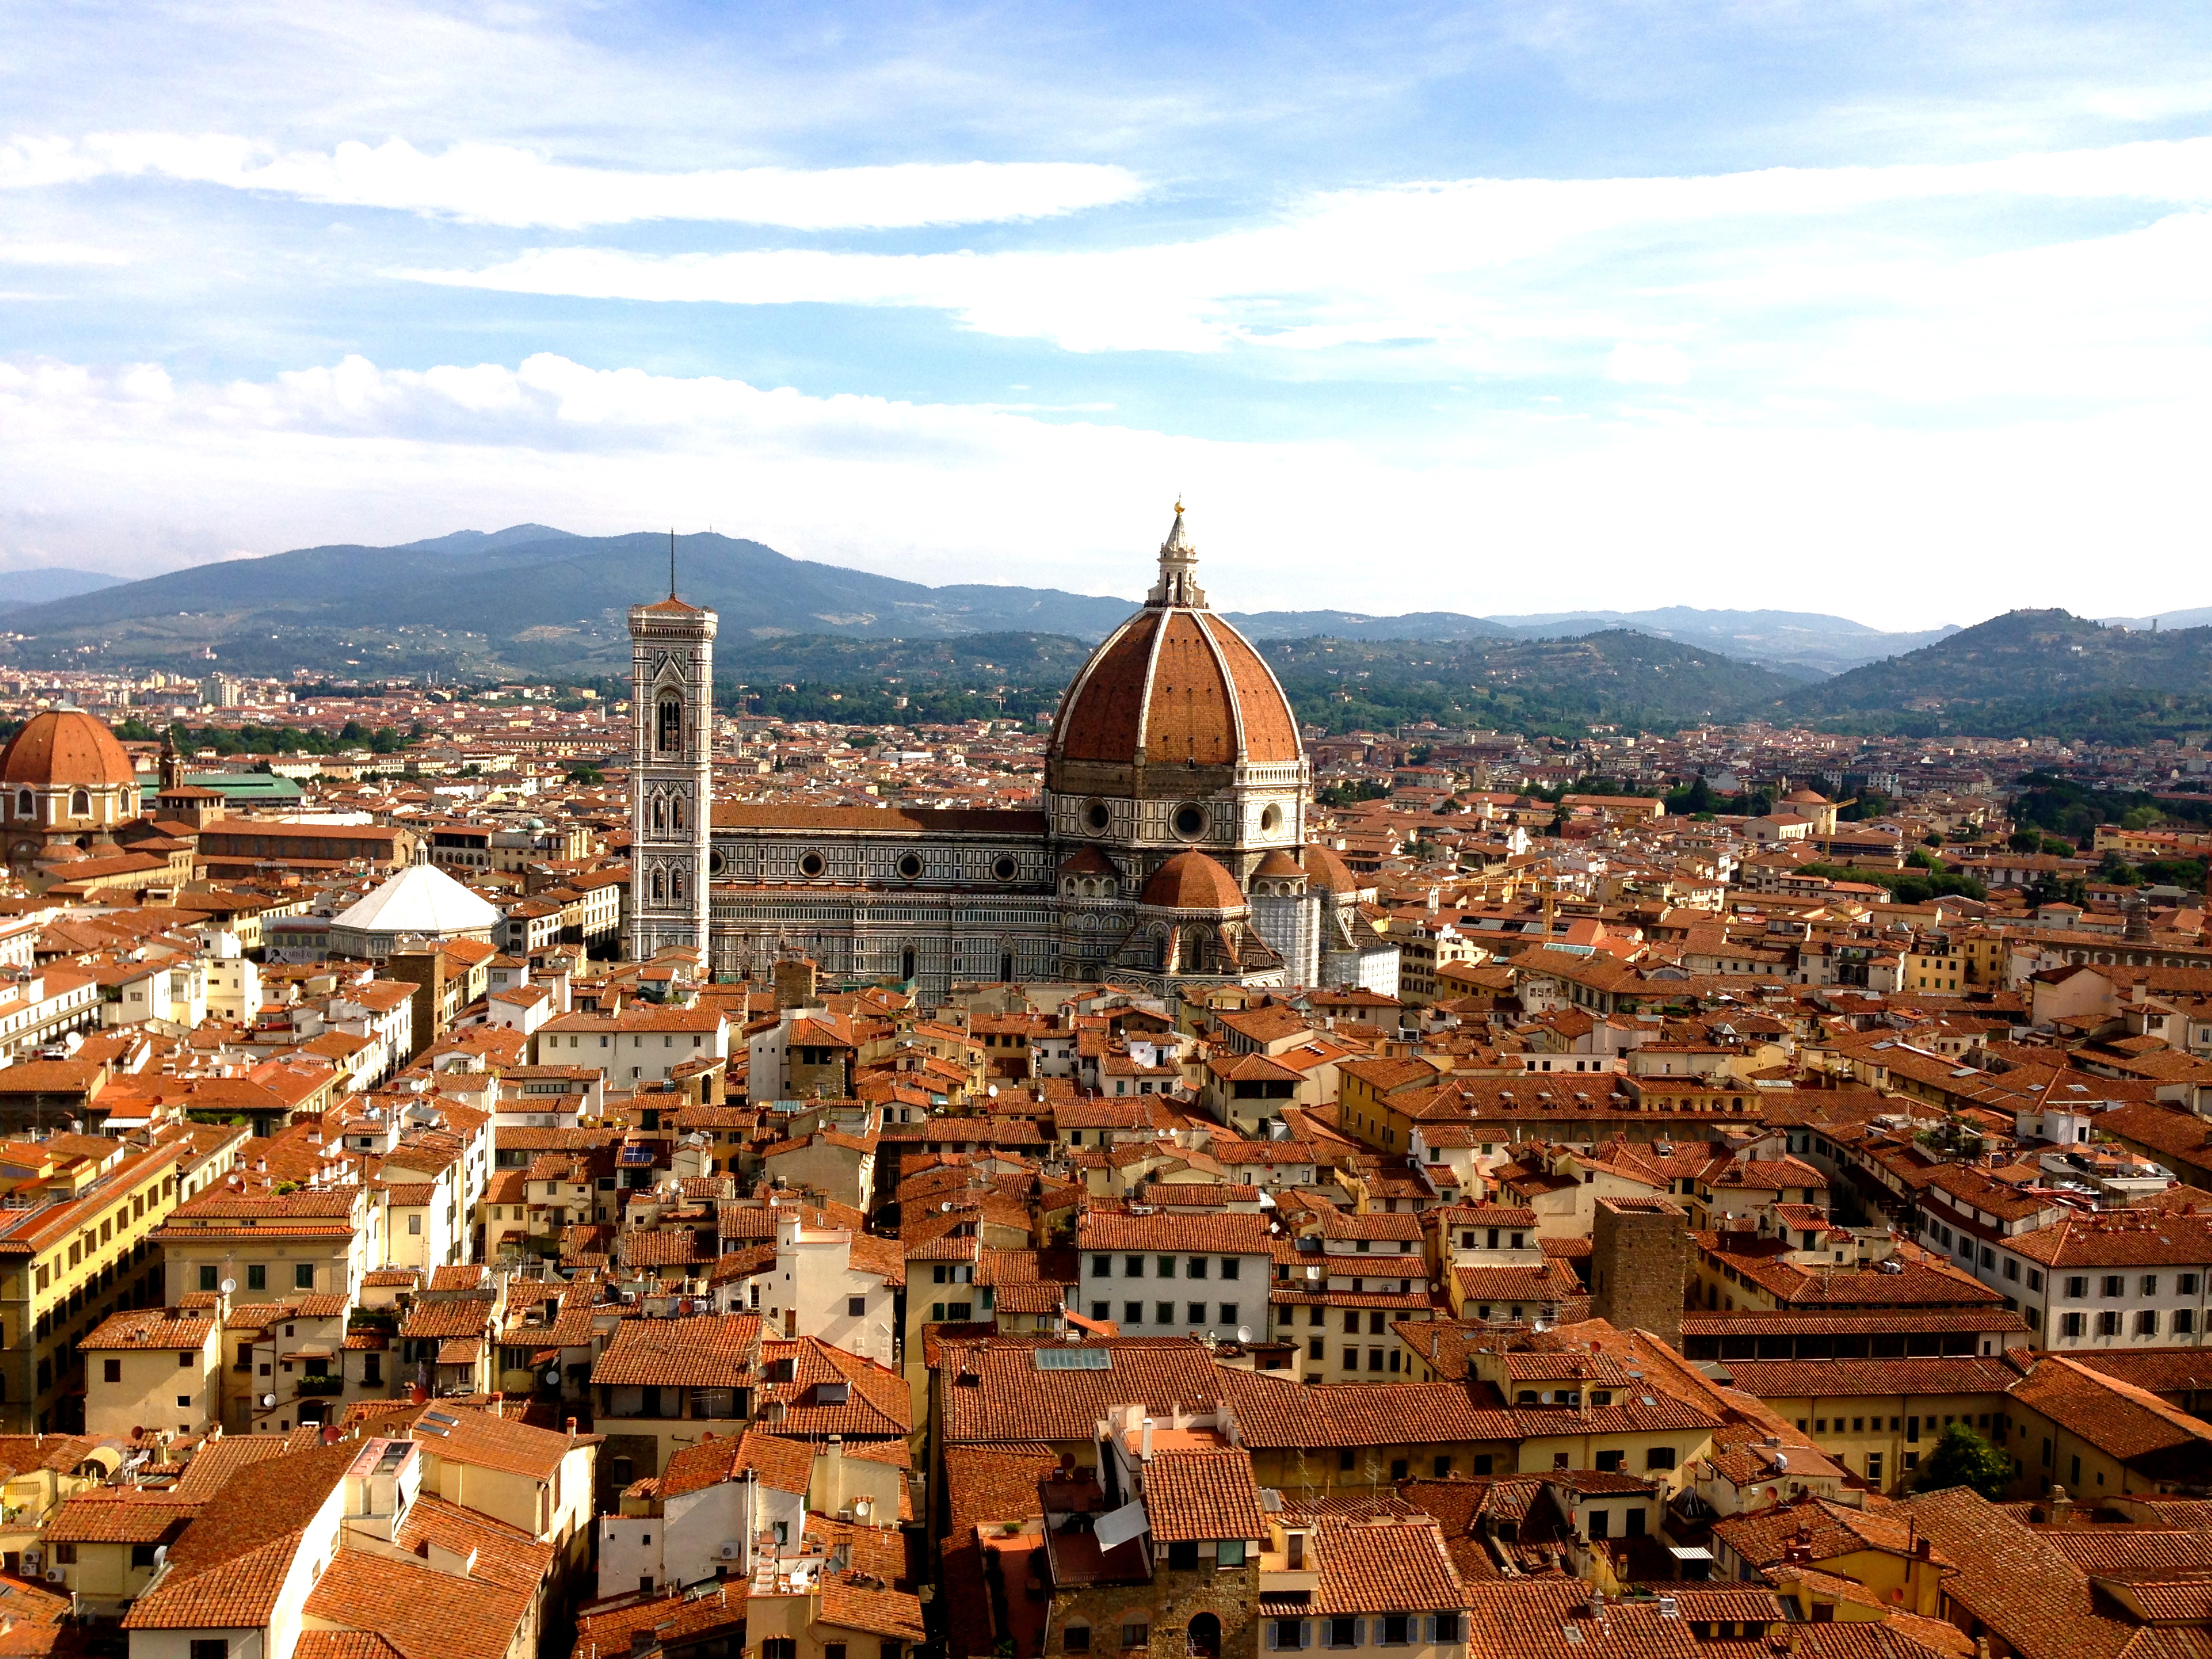 Best Views in Florence Panoramic View of the Duomo from the Tower of the Palazzo Vecchio